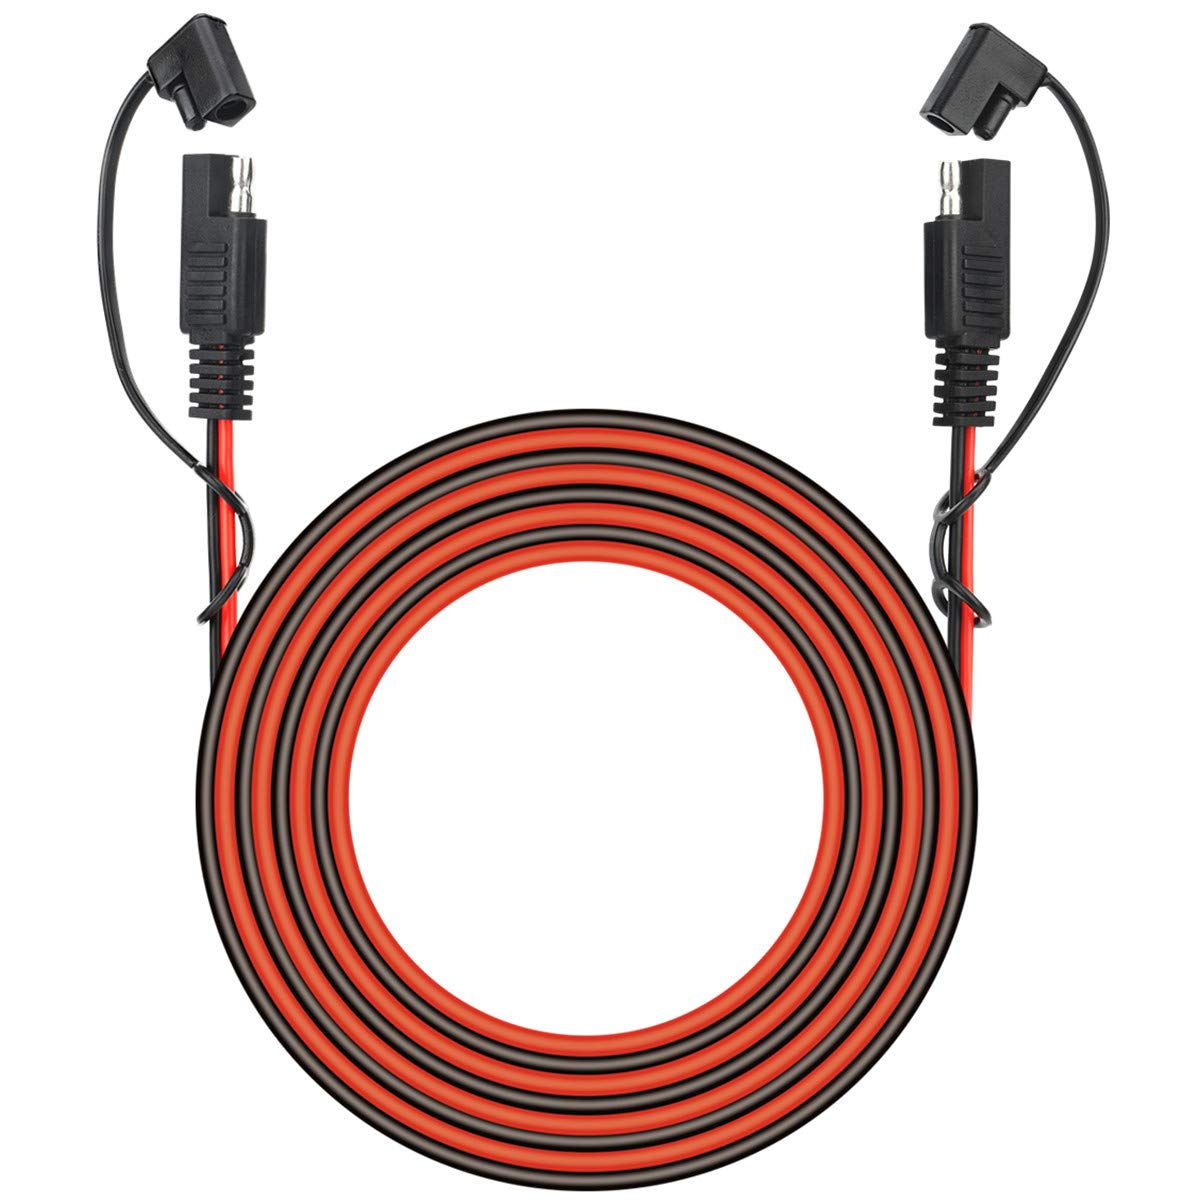 25 Foot SAE to SAE 2 Pin Quick Disconnect Harness,DC 12V Power Connector Plug Battery Charger SAE Power Extension Cable for Motorcycle,Car,Tractor,18 AWG Gauge + Dust Cap by muyimu